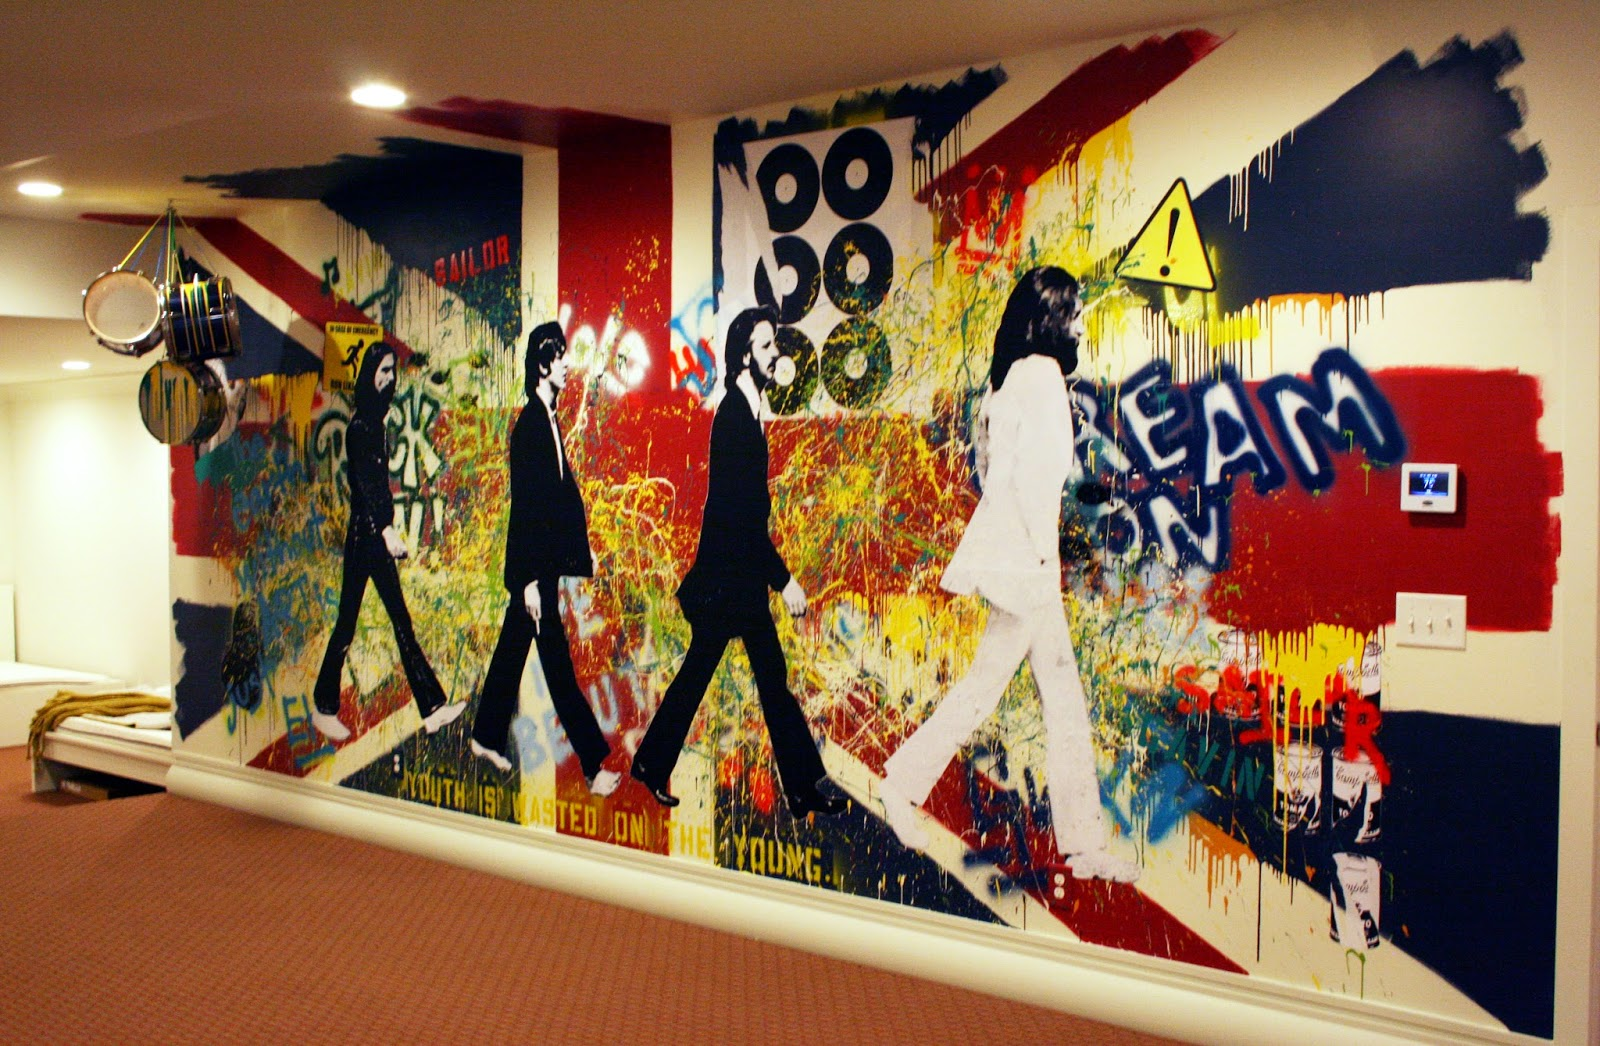 kathryn godwin visual artist graffiti wall mural behind On beatles wall mural